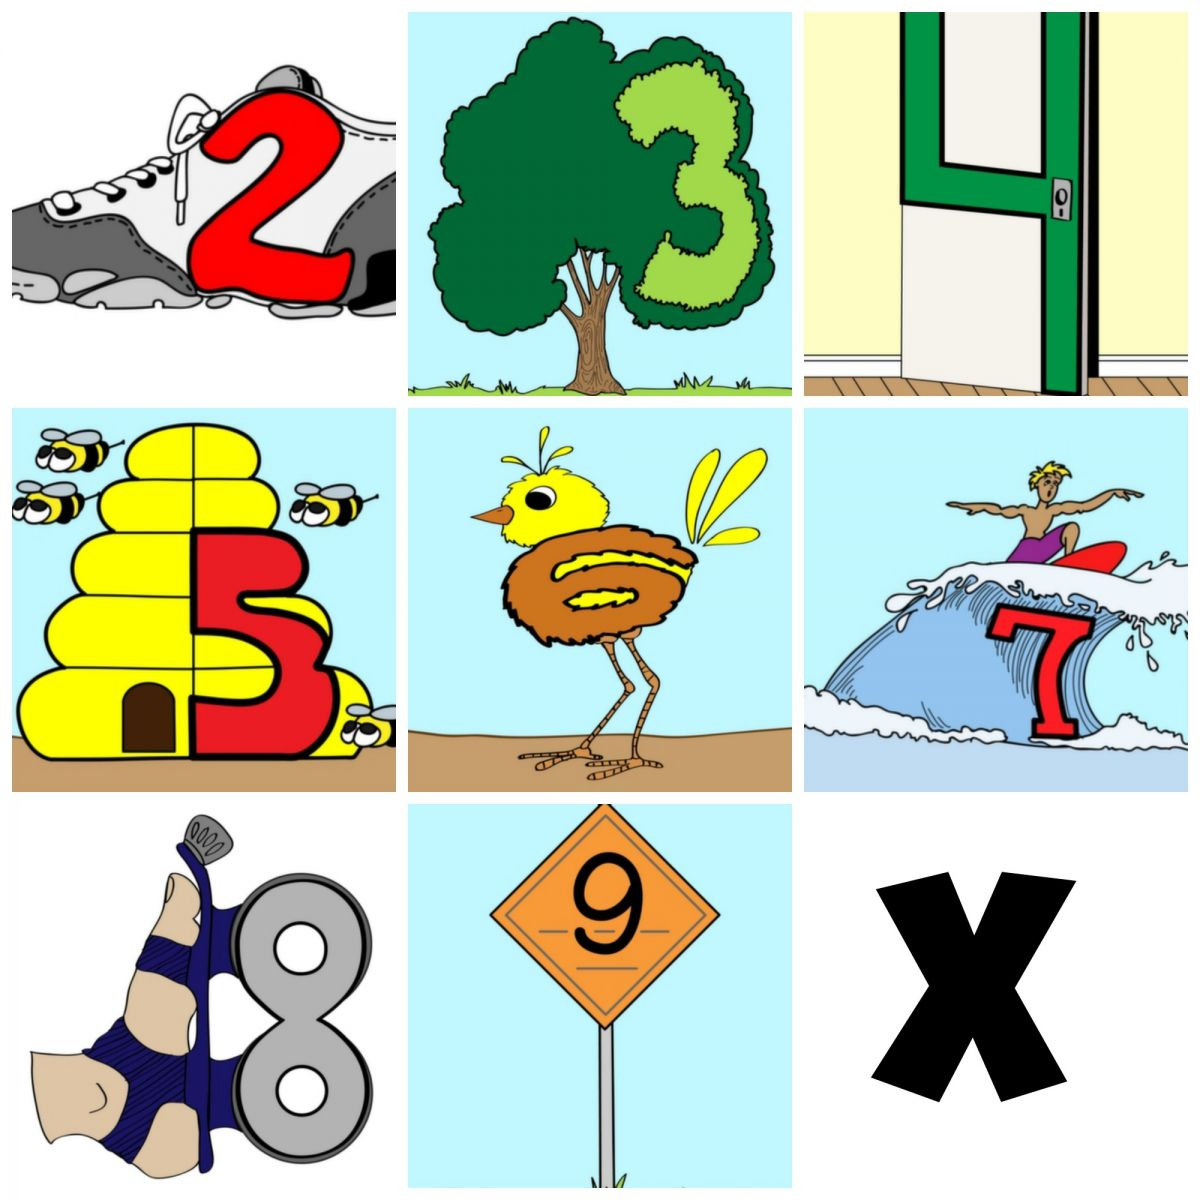 Practice And Teach Multiplication Facts: Game With Free with regard to Printable Multiplication Fact Games